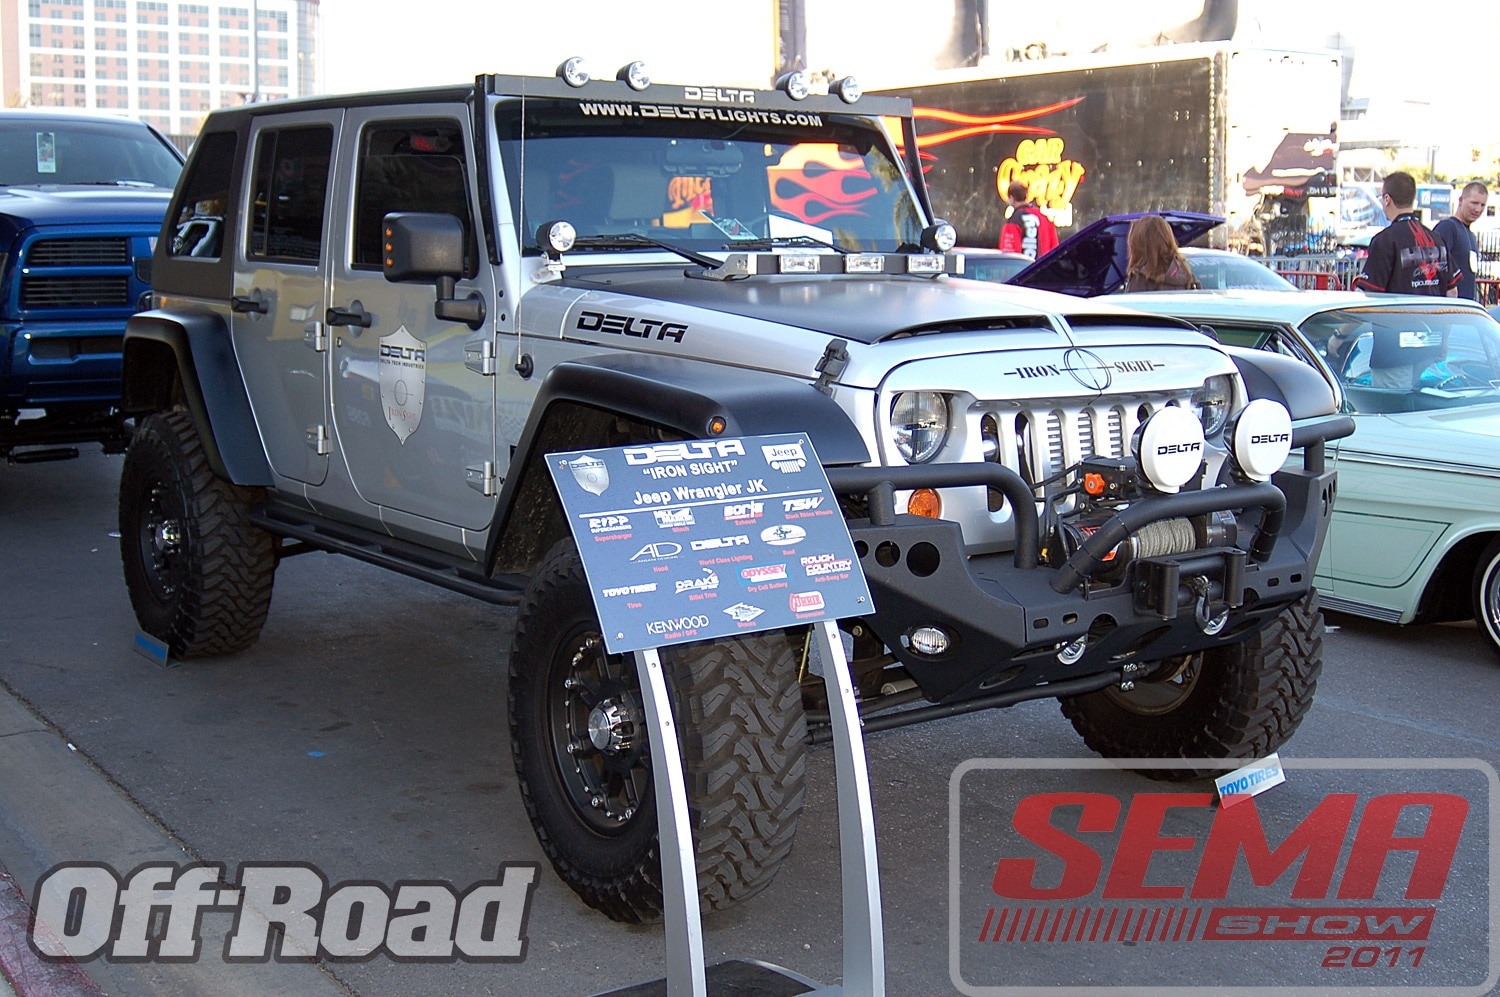 102312or 0151+2011 sema show+off road trucks and products